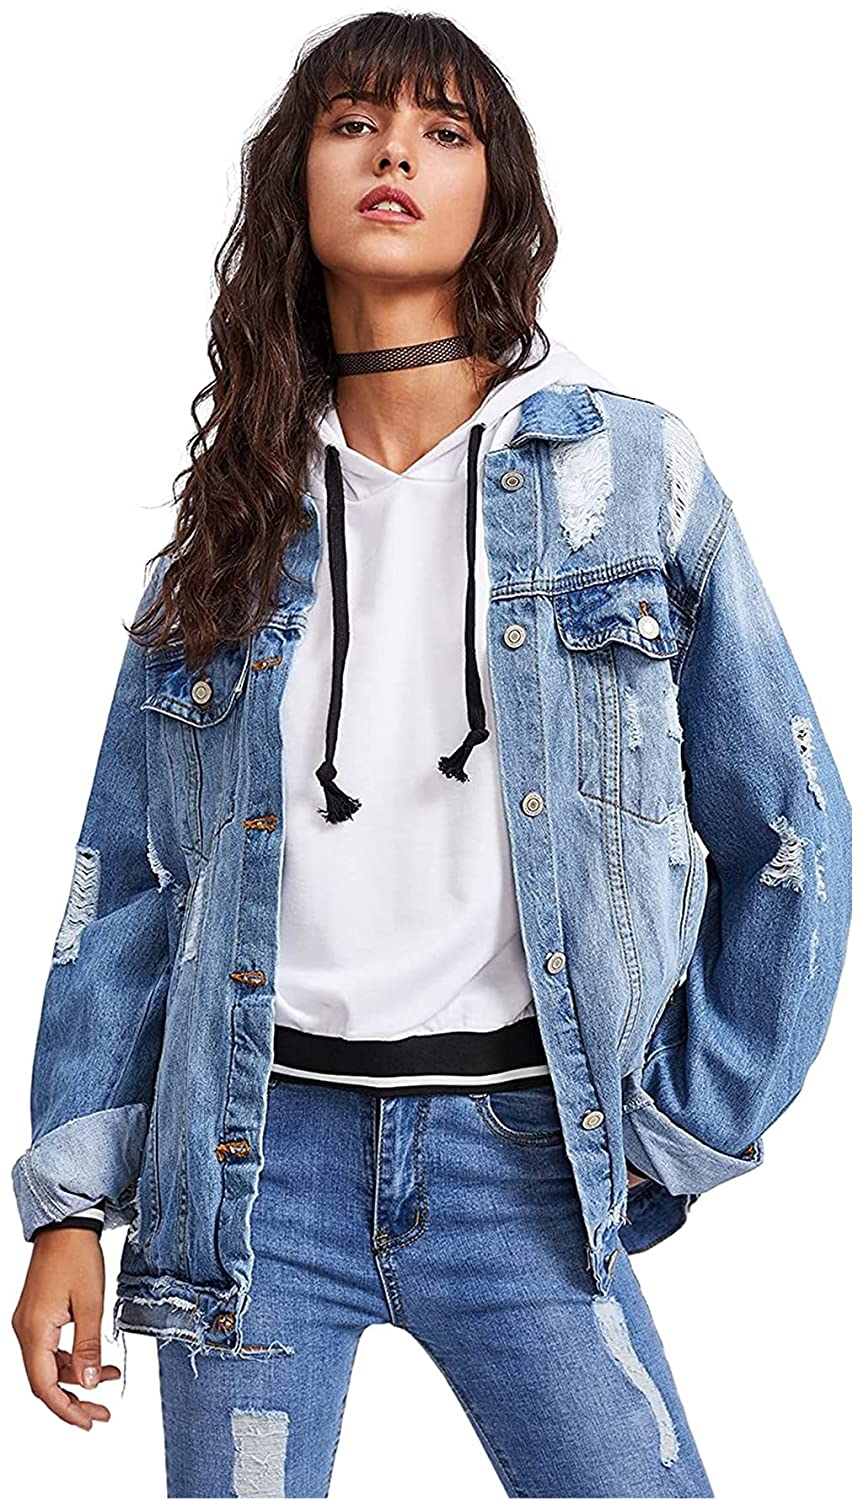 Floerns Women's Ripped Distressed Casual Long Sleeve Denim Jacket